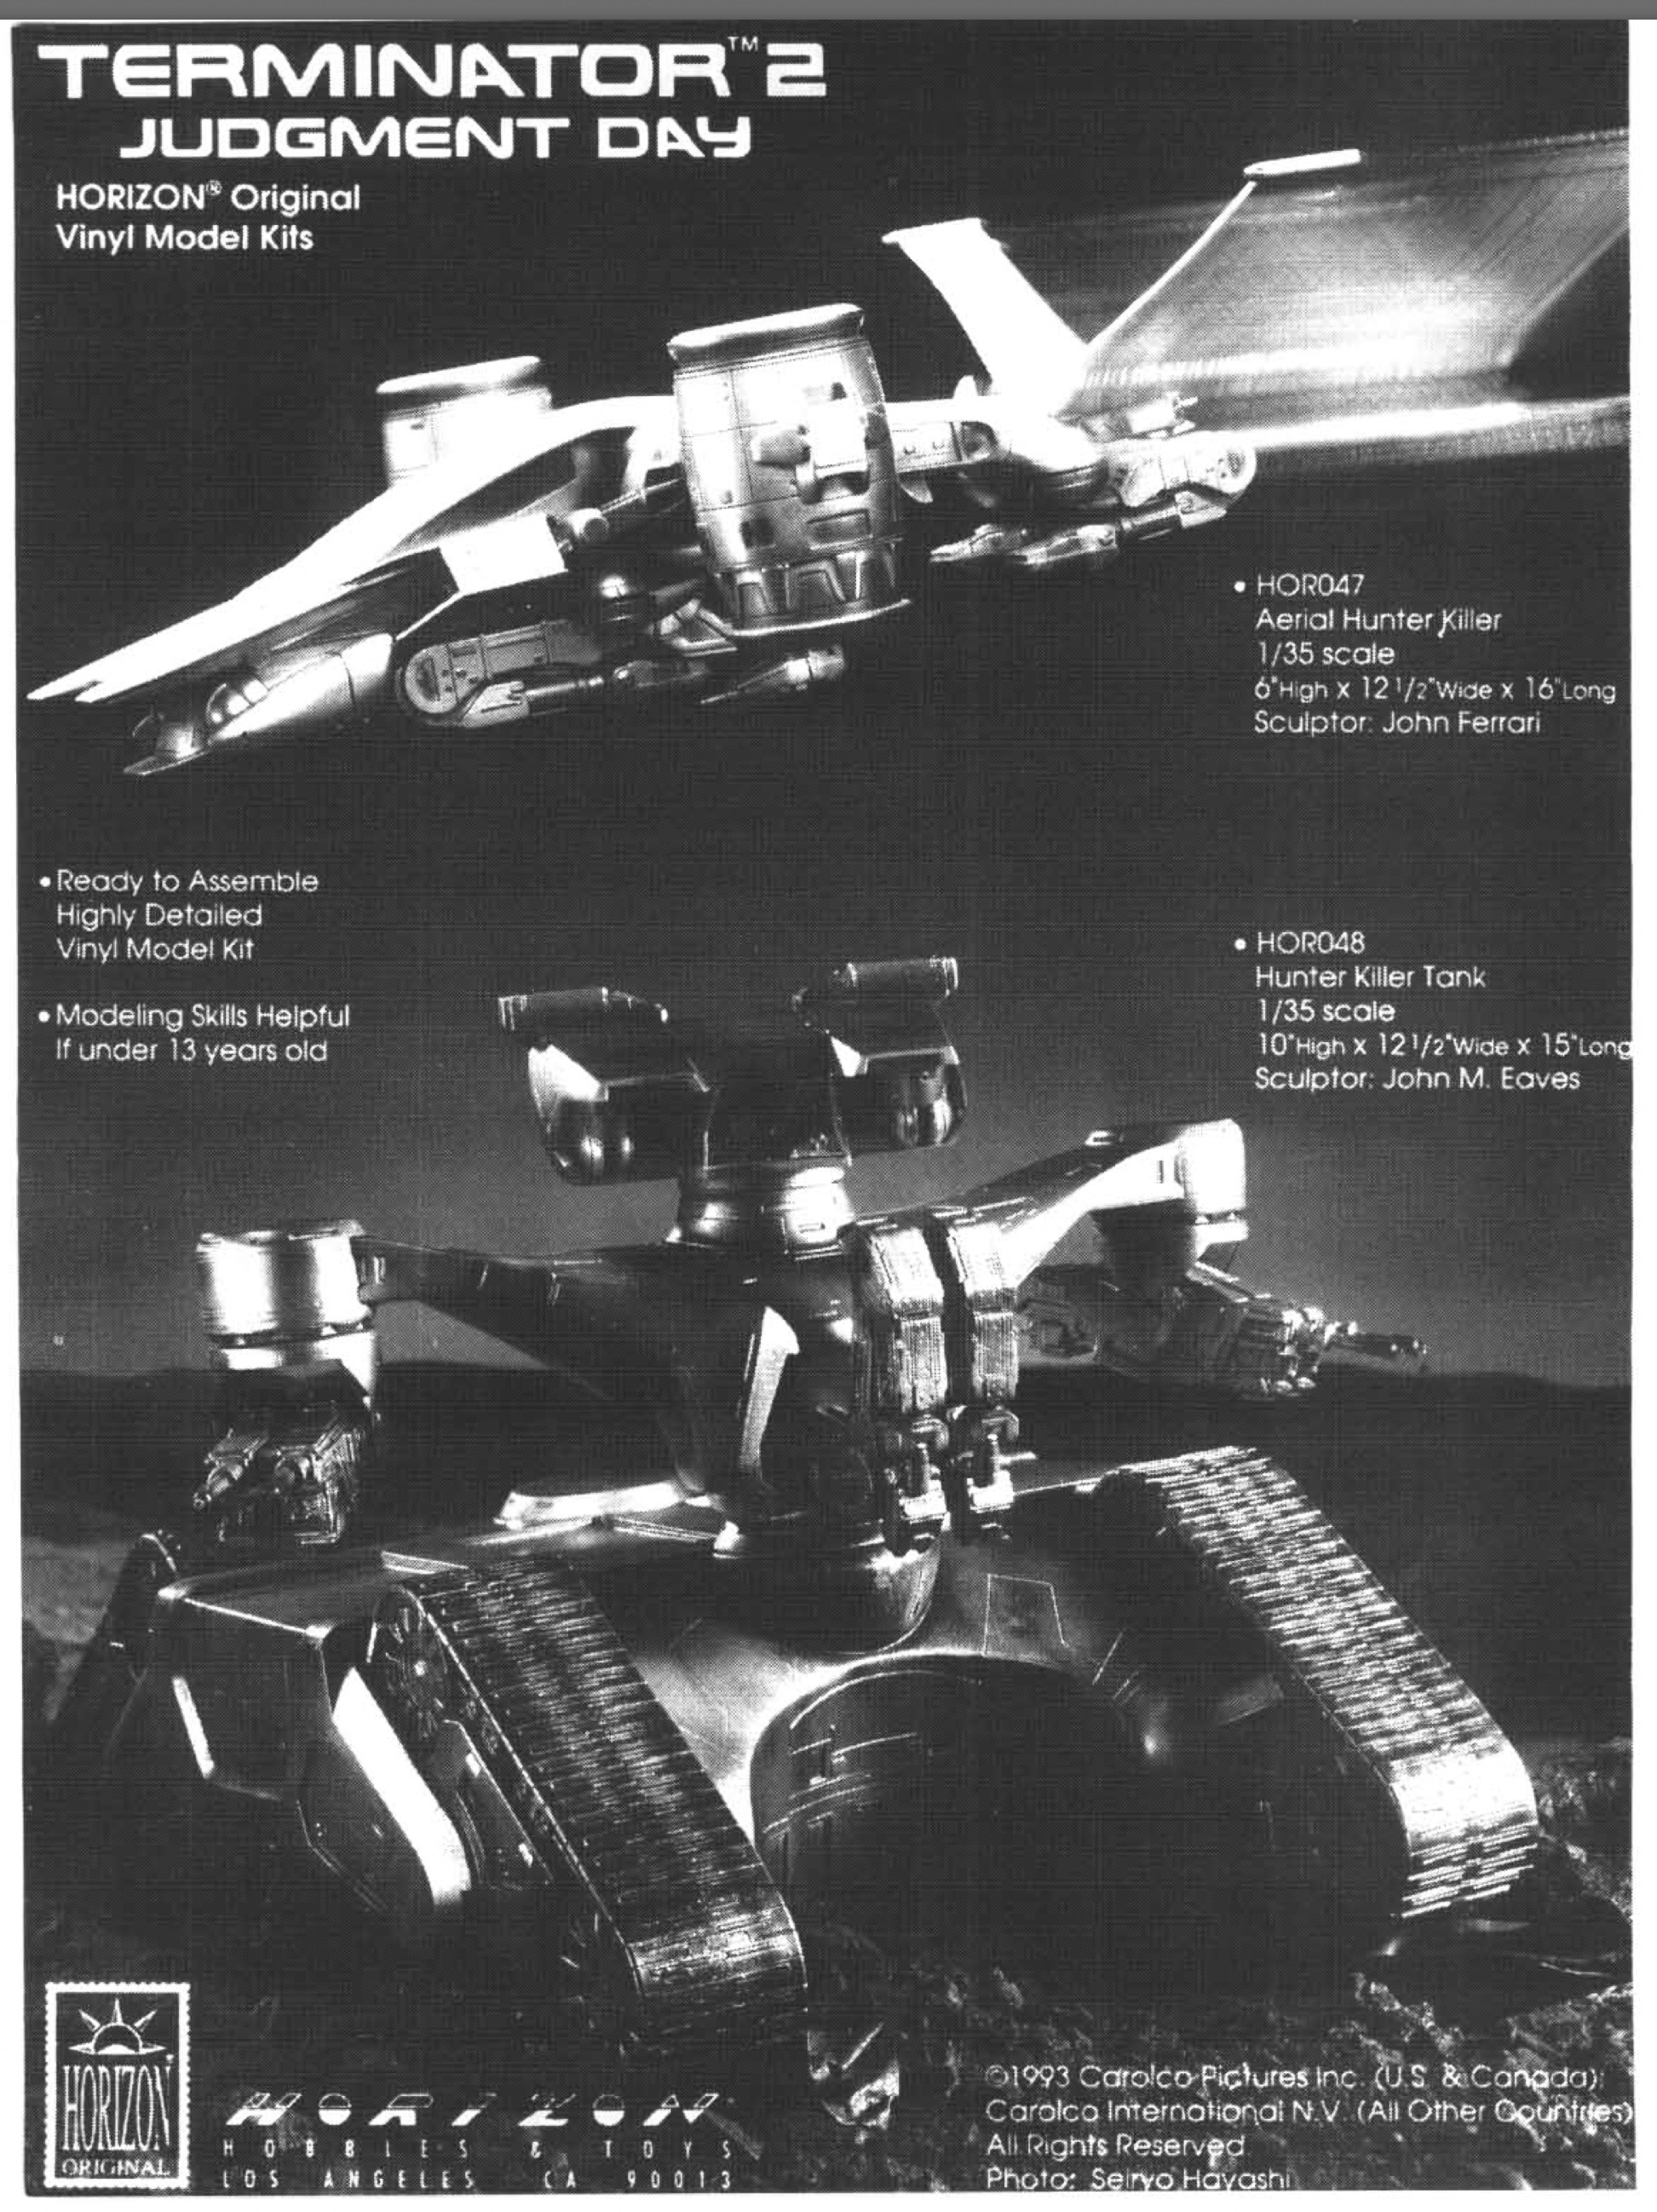 1994 Terminator 2 Model Kits Advertisement